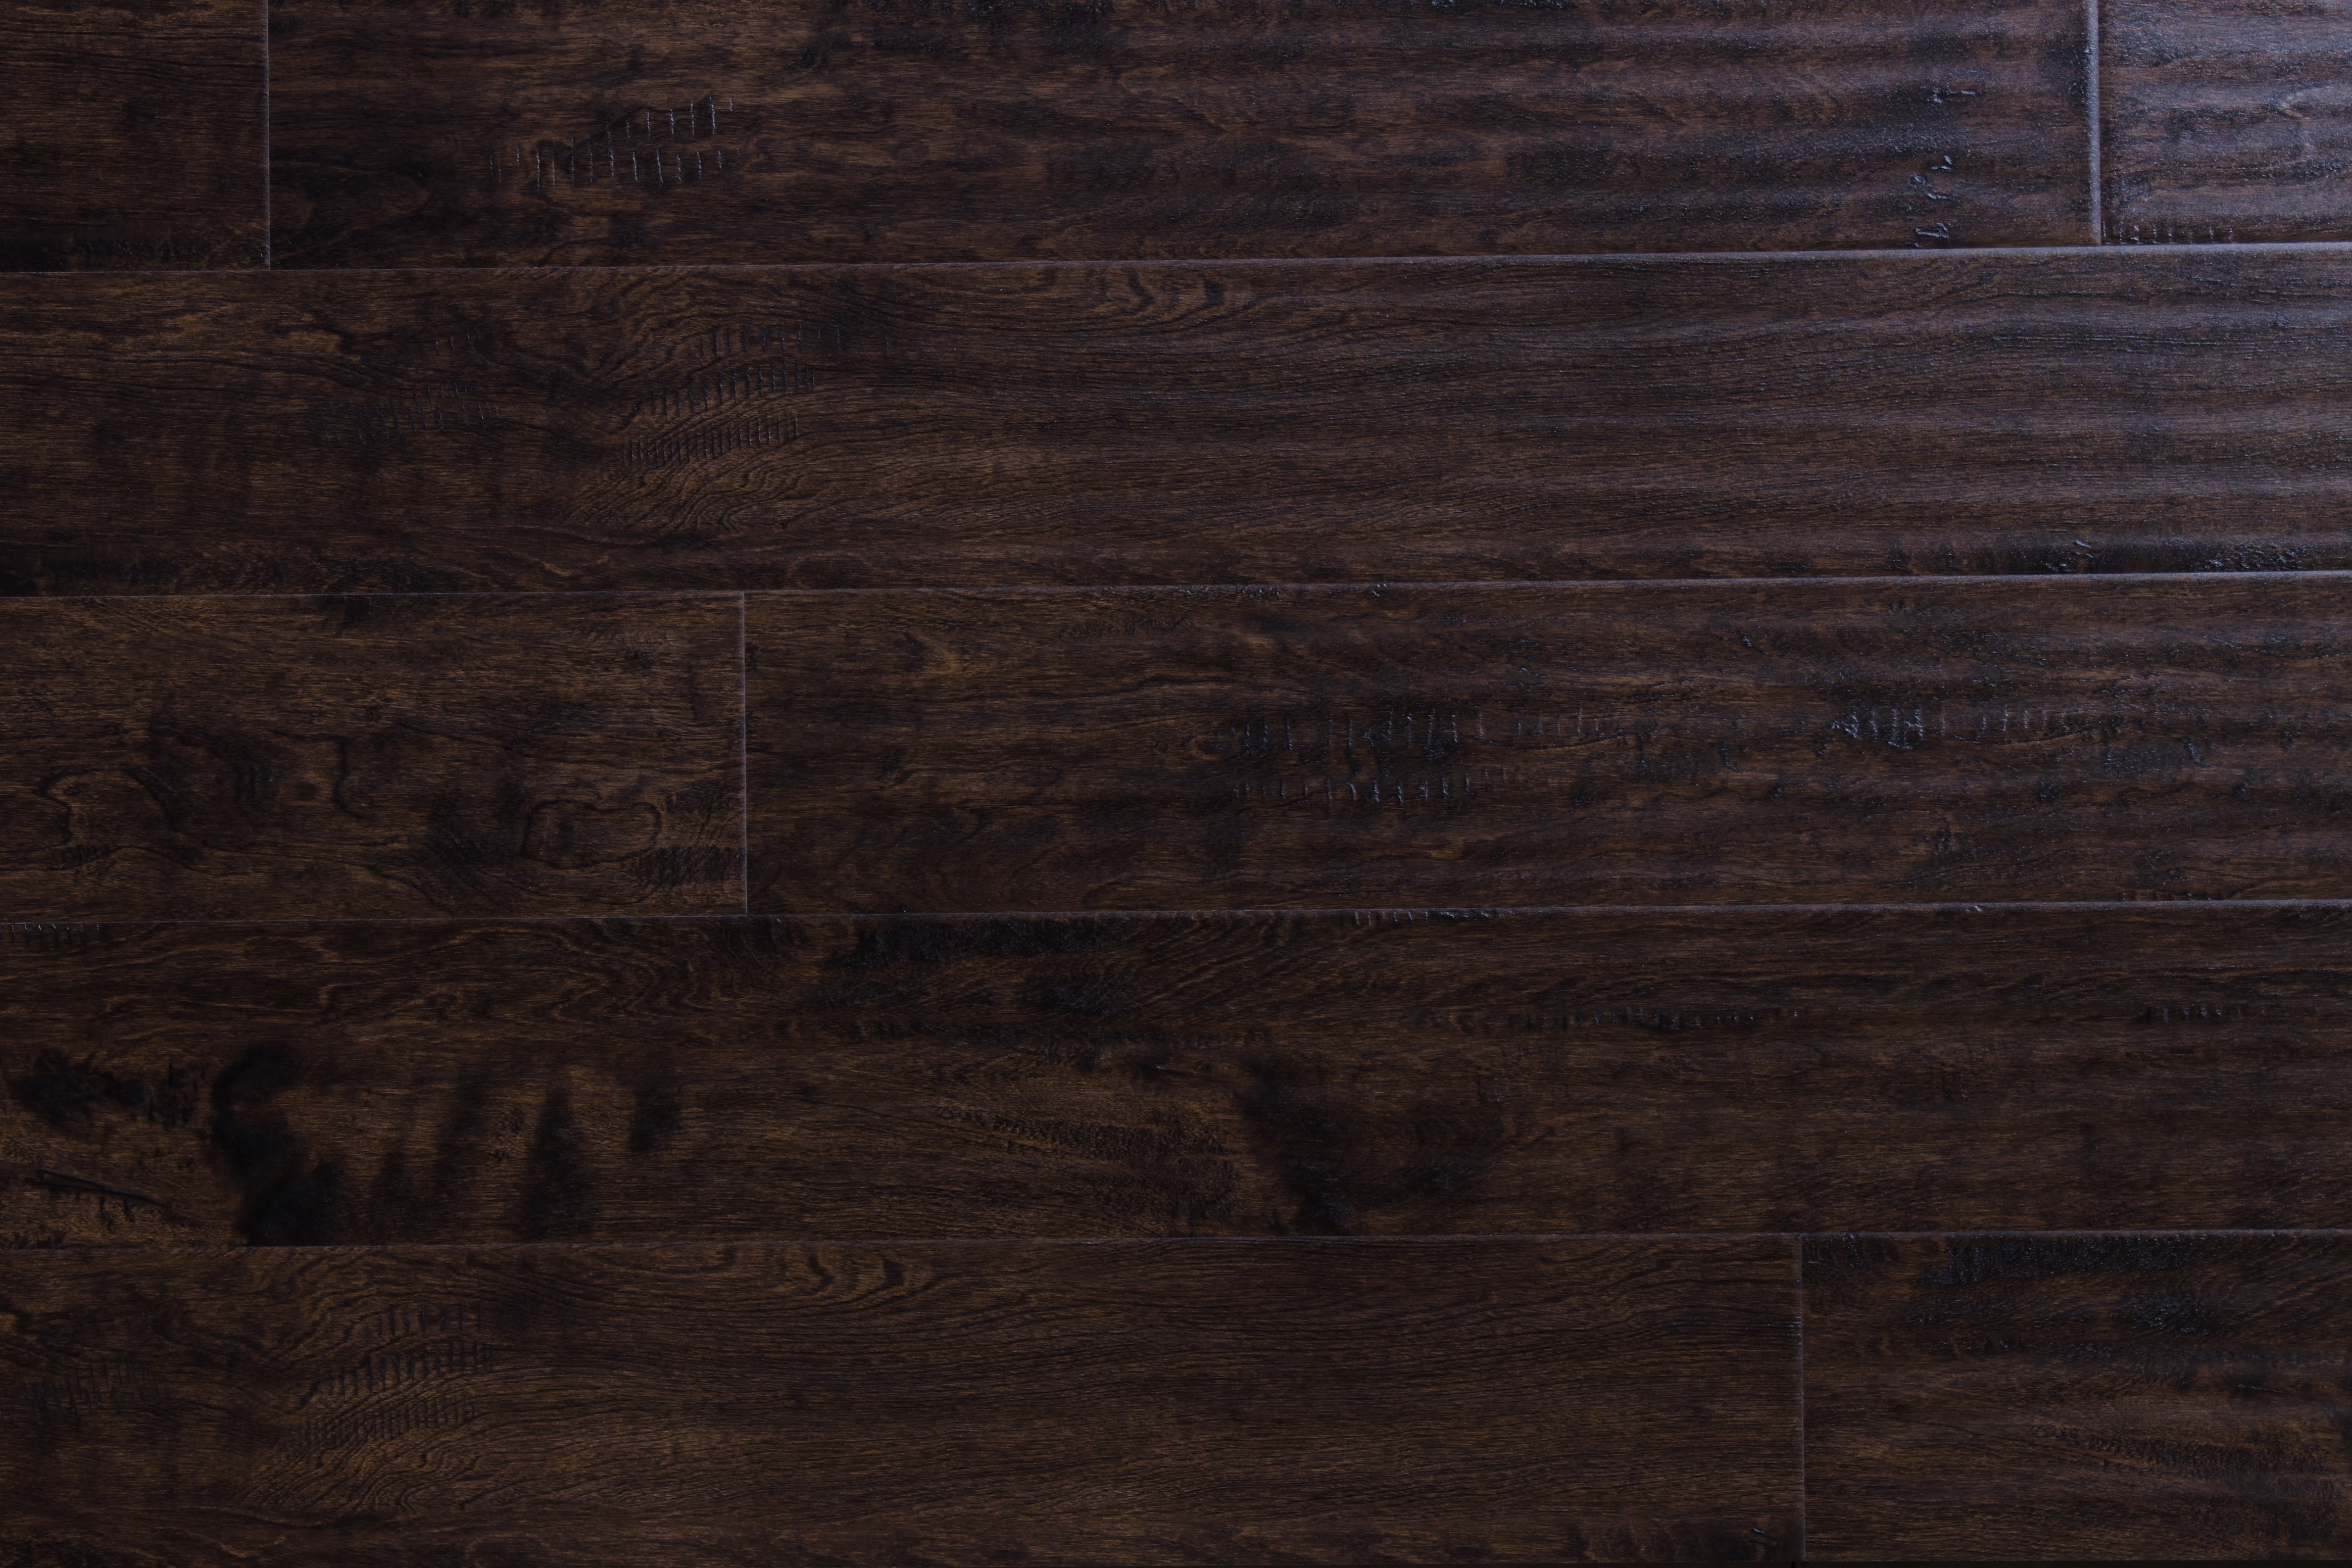 hardwood floor suppliers denver of wood flooring free samples available at builddirecta pertaining to tailor multi gb 5874277bb8d3c